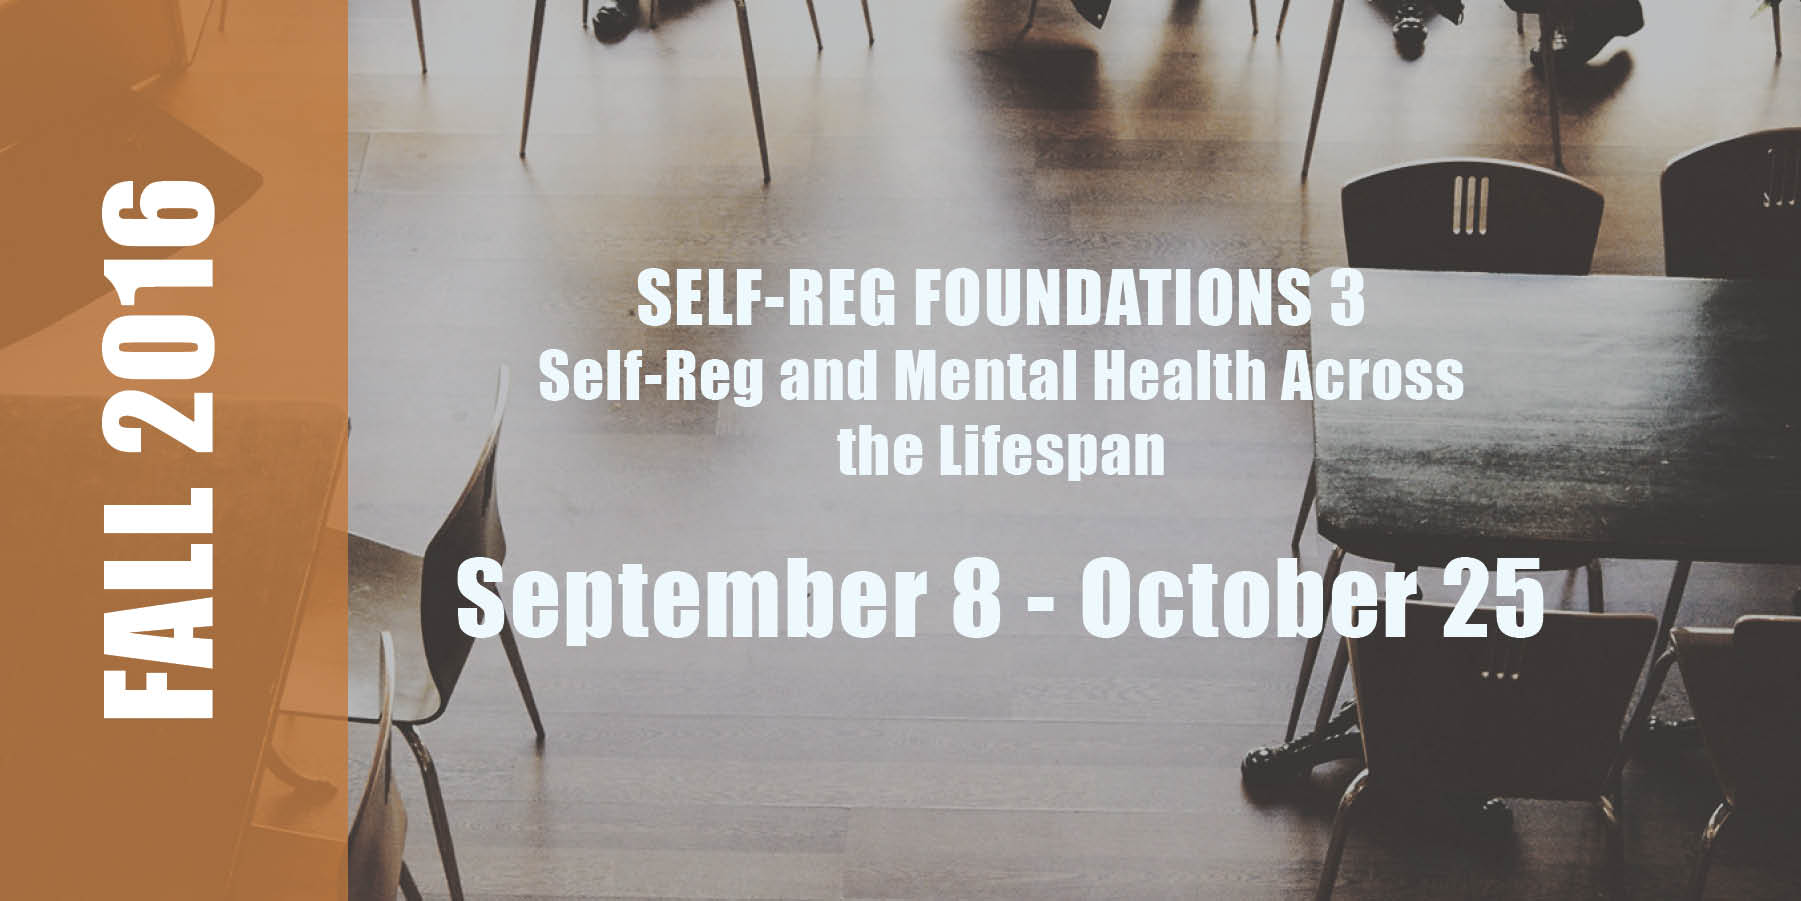 S-R Foundations 3    Date: September 8 - October 25